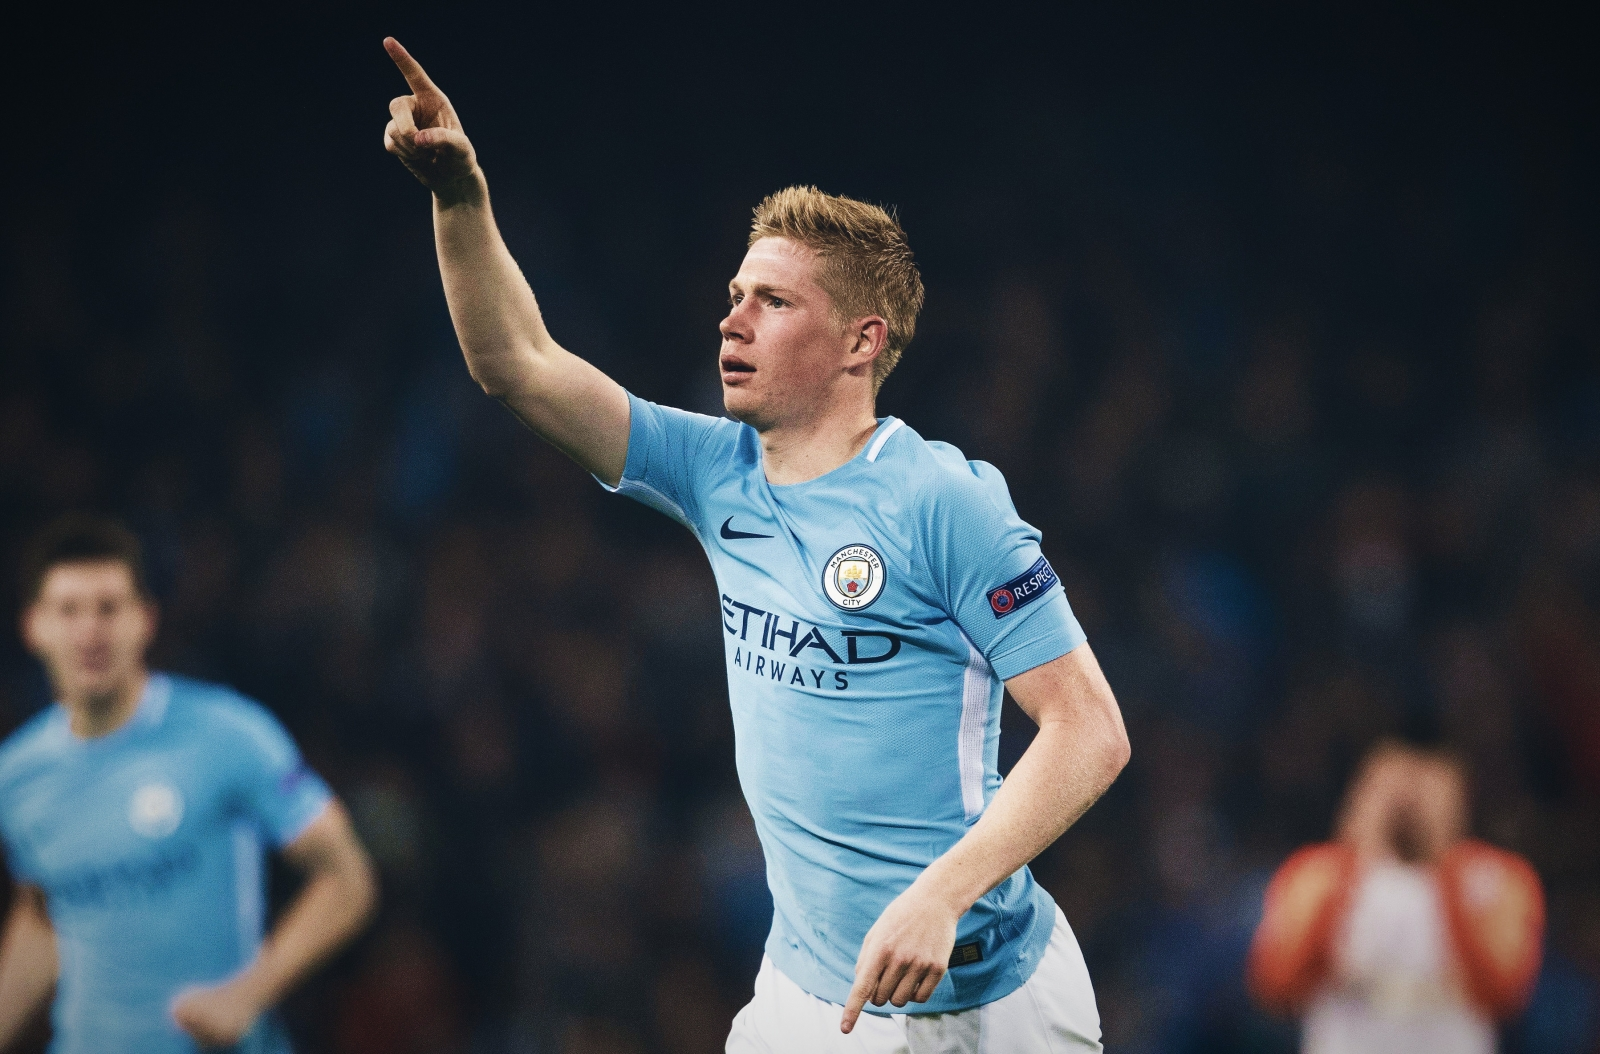 Photo of Kevin De Bruyne Jaminan 3-4 Assists dalam Satu Pertandingan